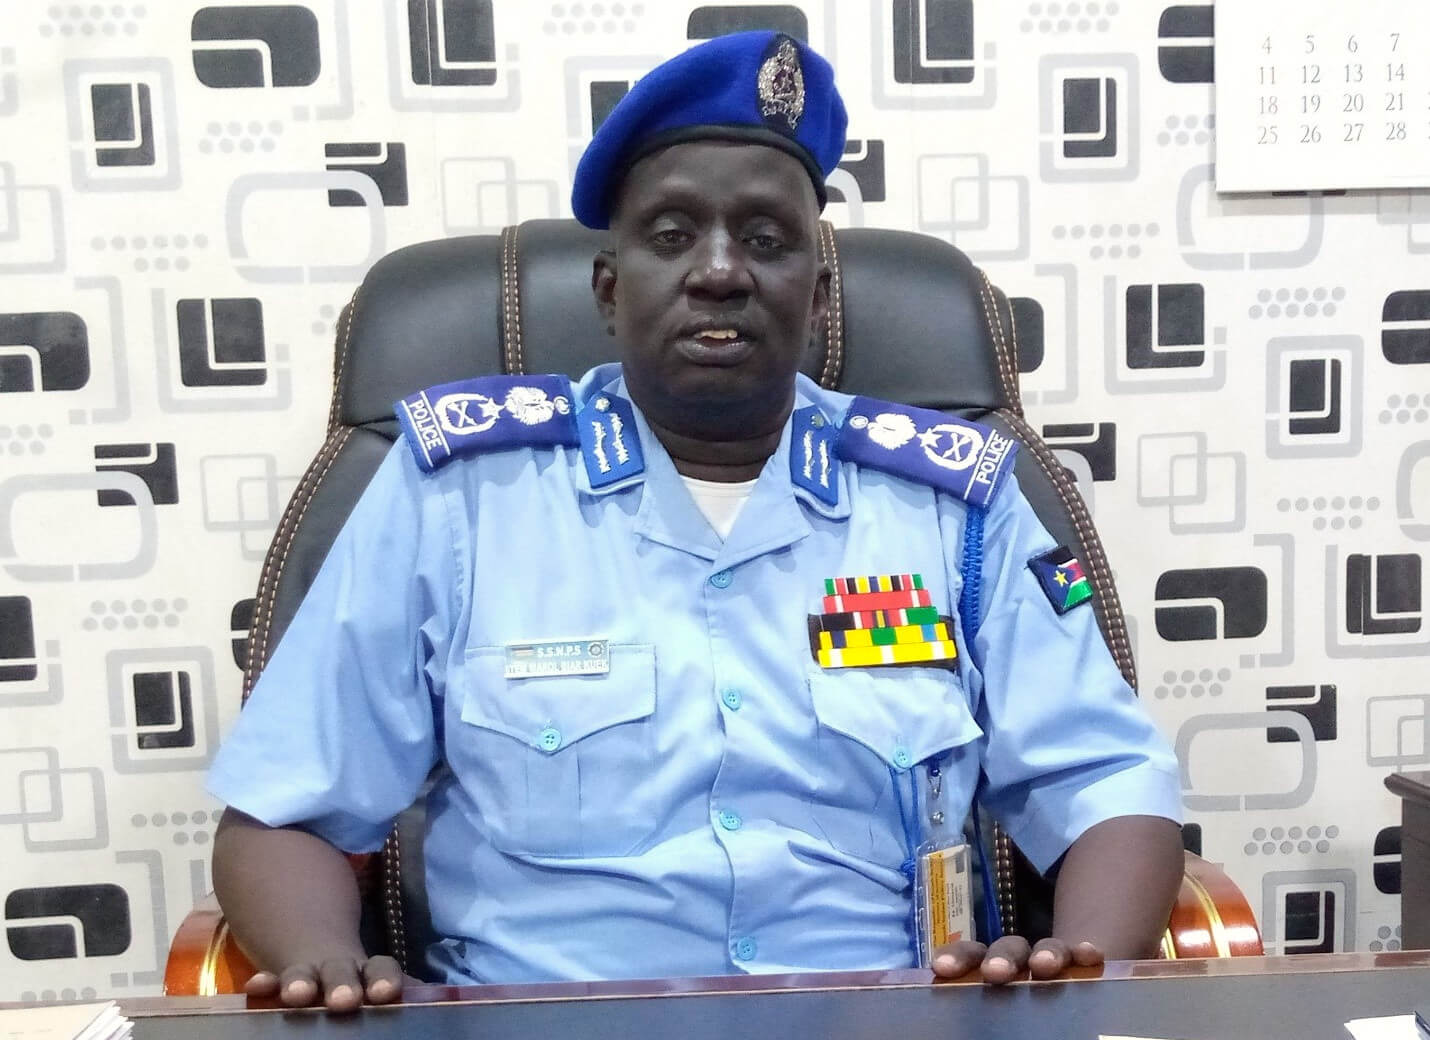 Juba airport police warned against corruption